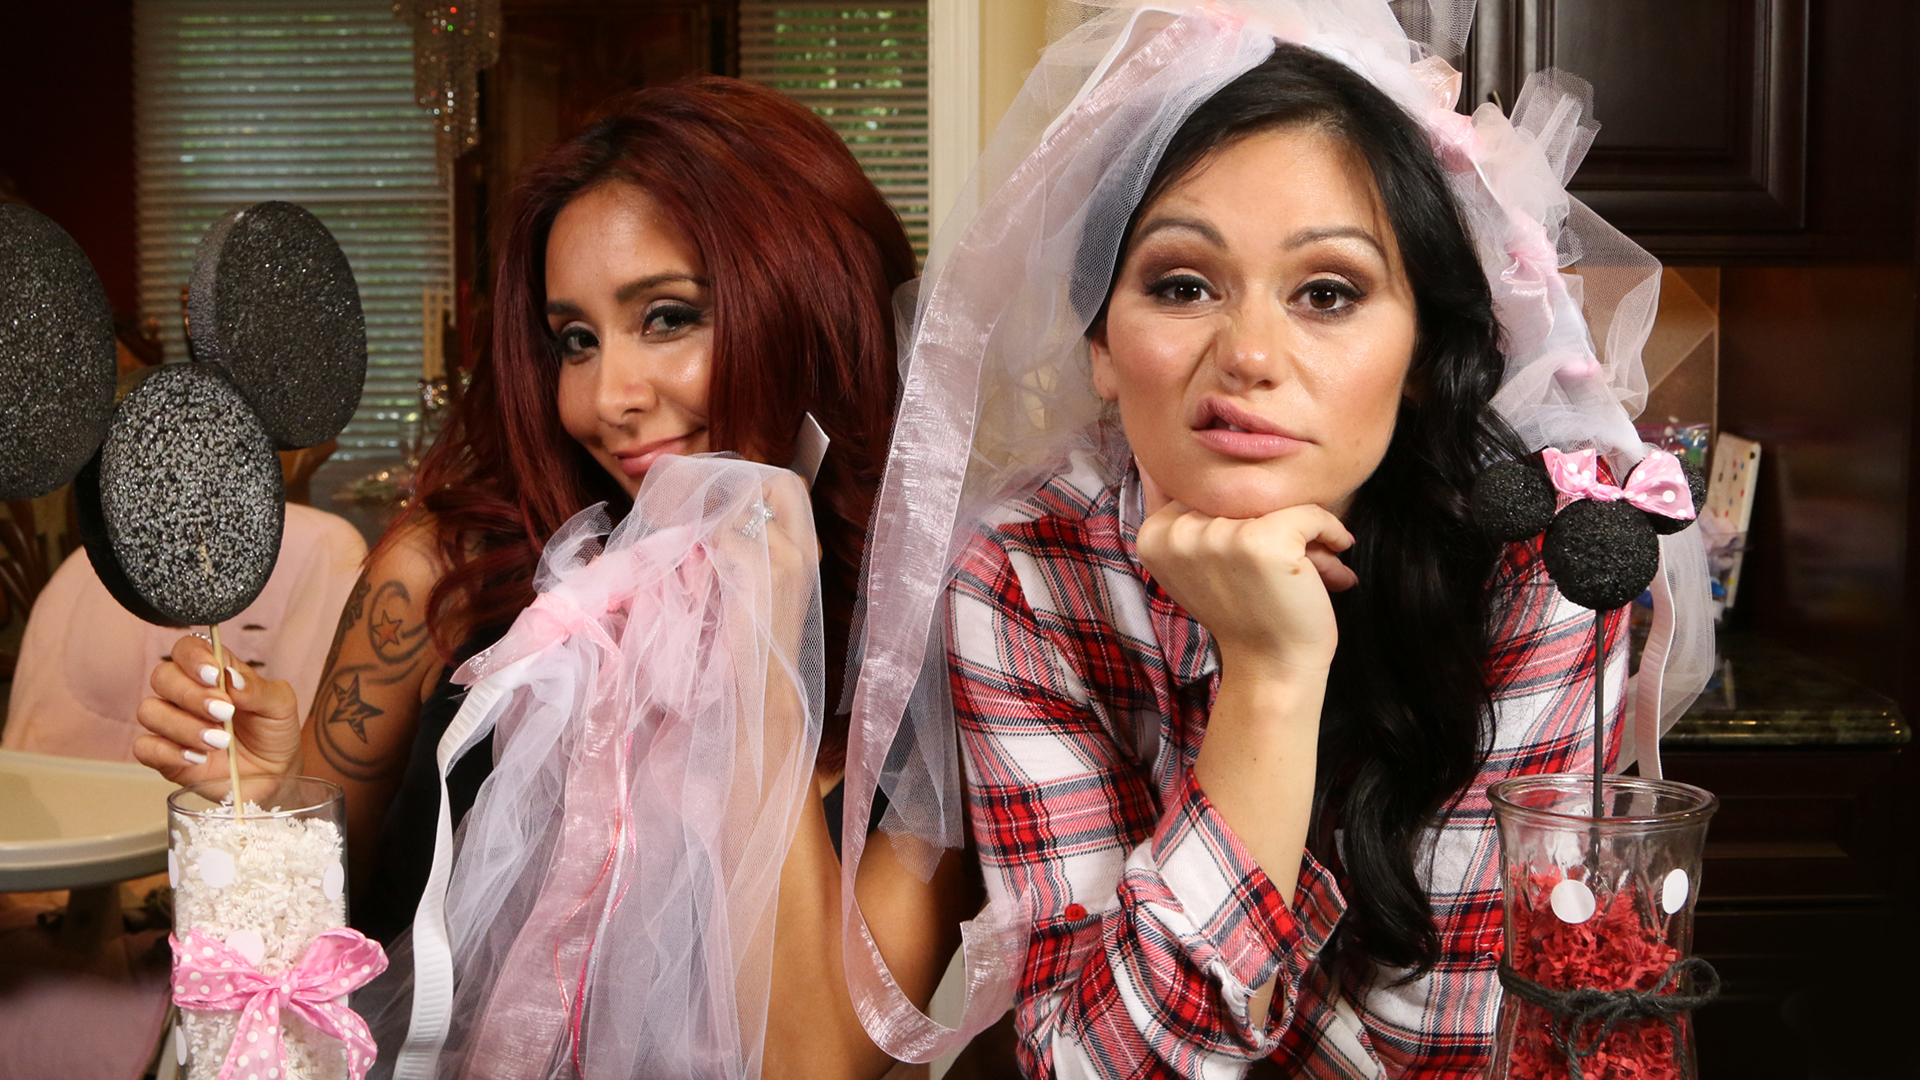 Jwoww/Snookie - Mom's With Attitude